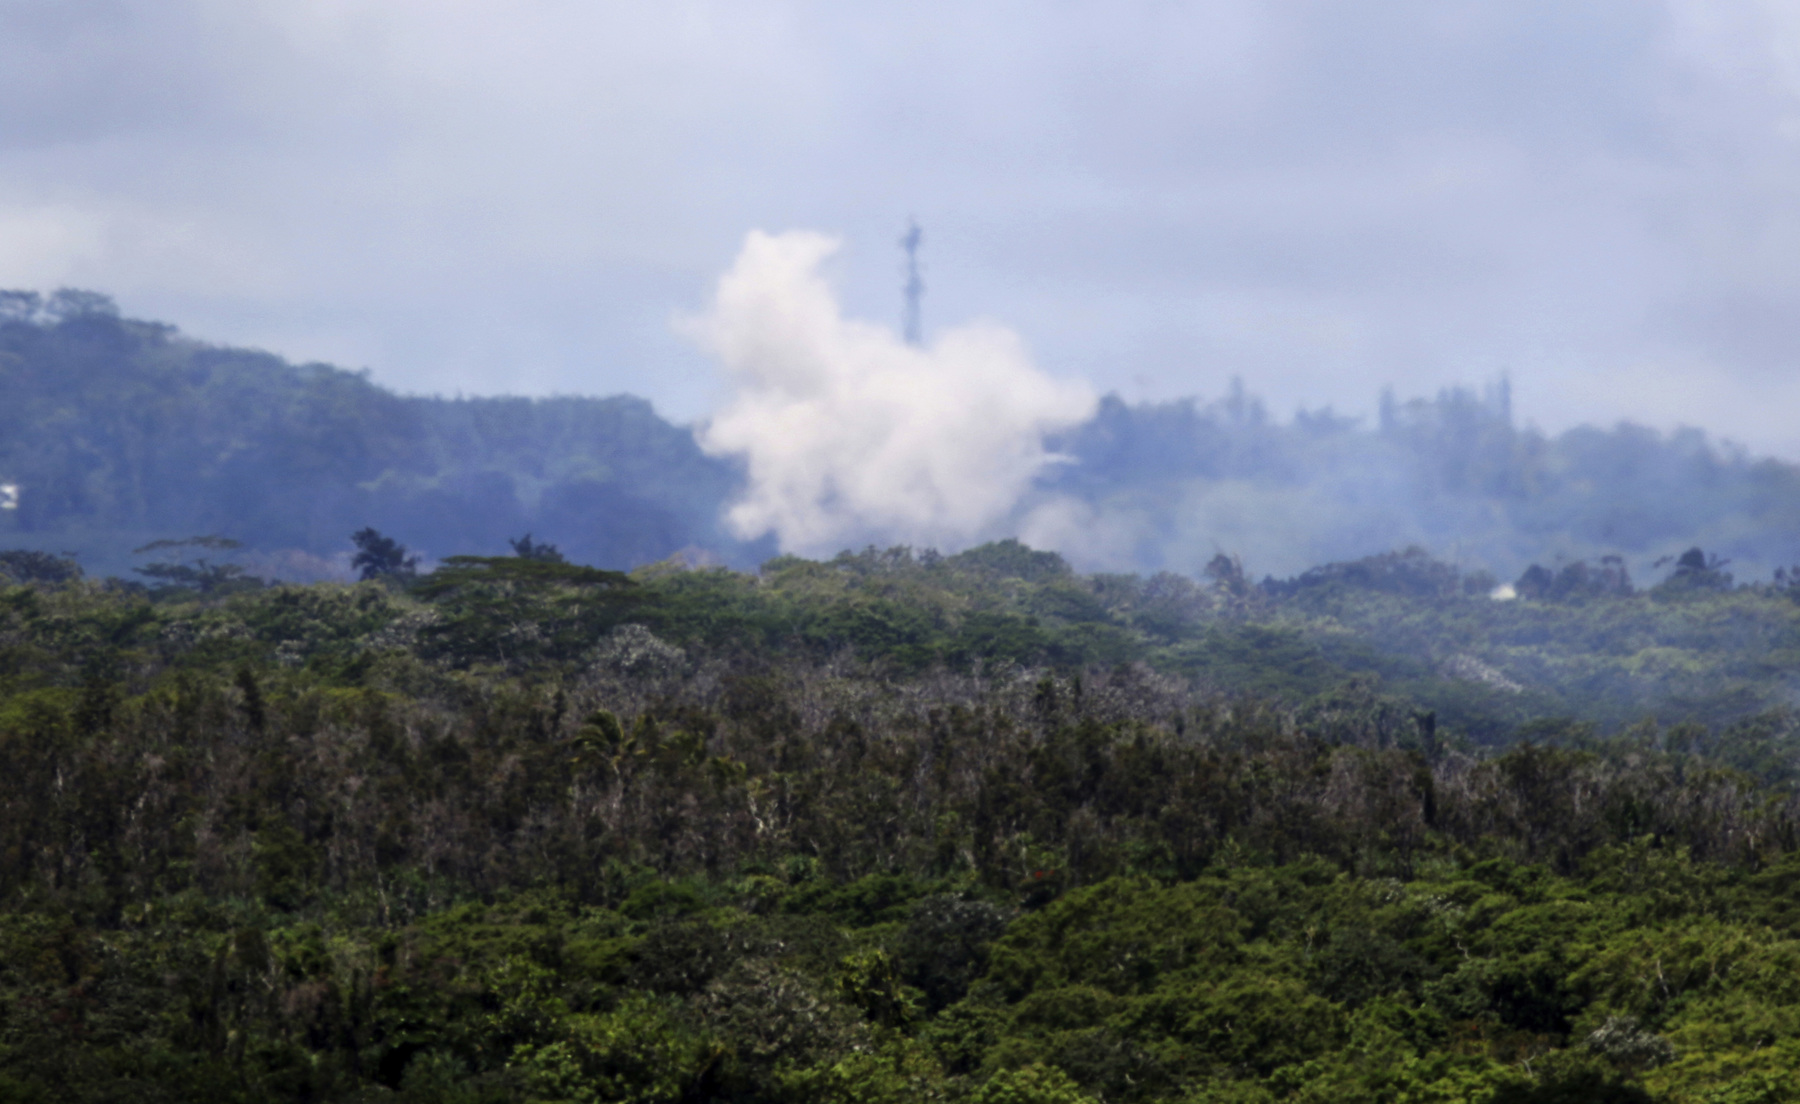 <div class='meta'><div class='origin-logo' data-origin='AP'></div><span class='caption-text' data-credit='AP Photo/Caleb Jones'>Volcanic gases and ash rise from recent lava fissures near Pahoa, Hawaii on Monday, May 14, 2018.</span></div>